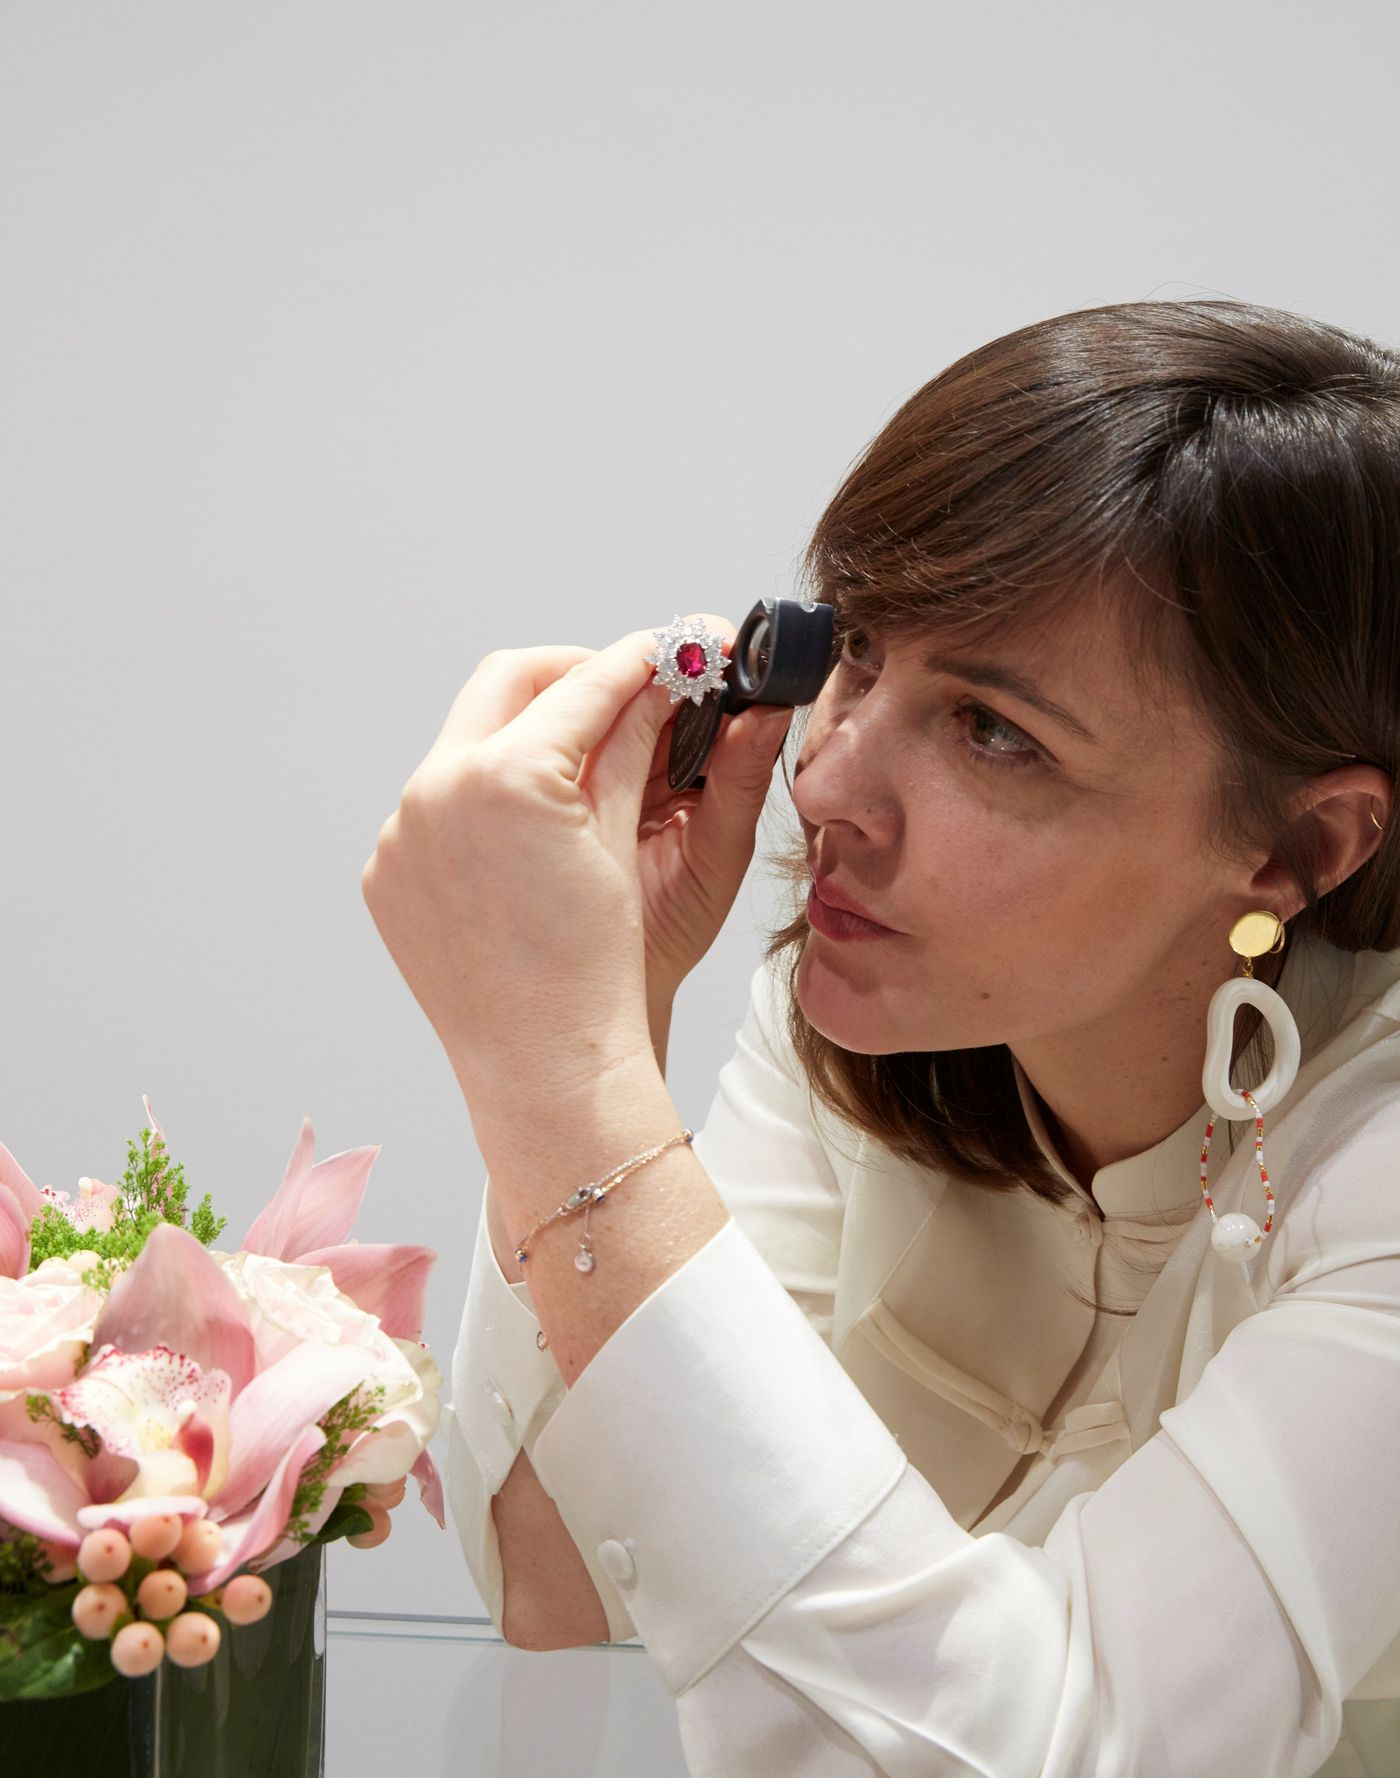 It's been a year of steady growth for the Phillips Jewels department, with new faces and bigger sales than ever defining their 2018 seasons in New York, London and Hong Kong.